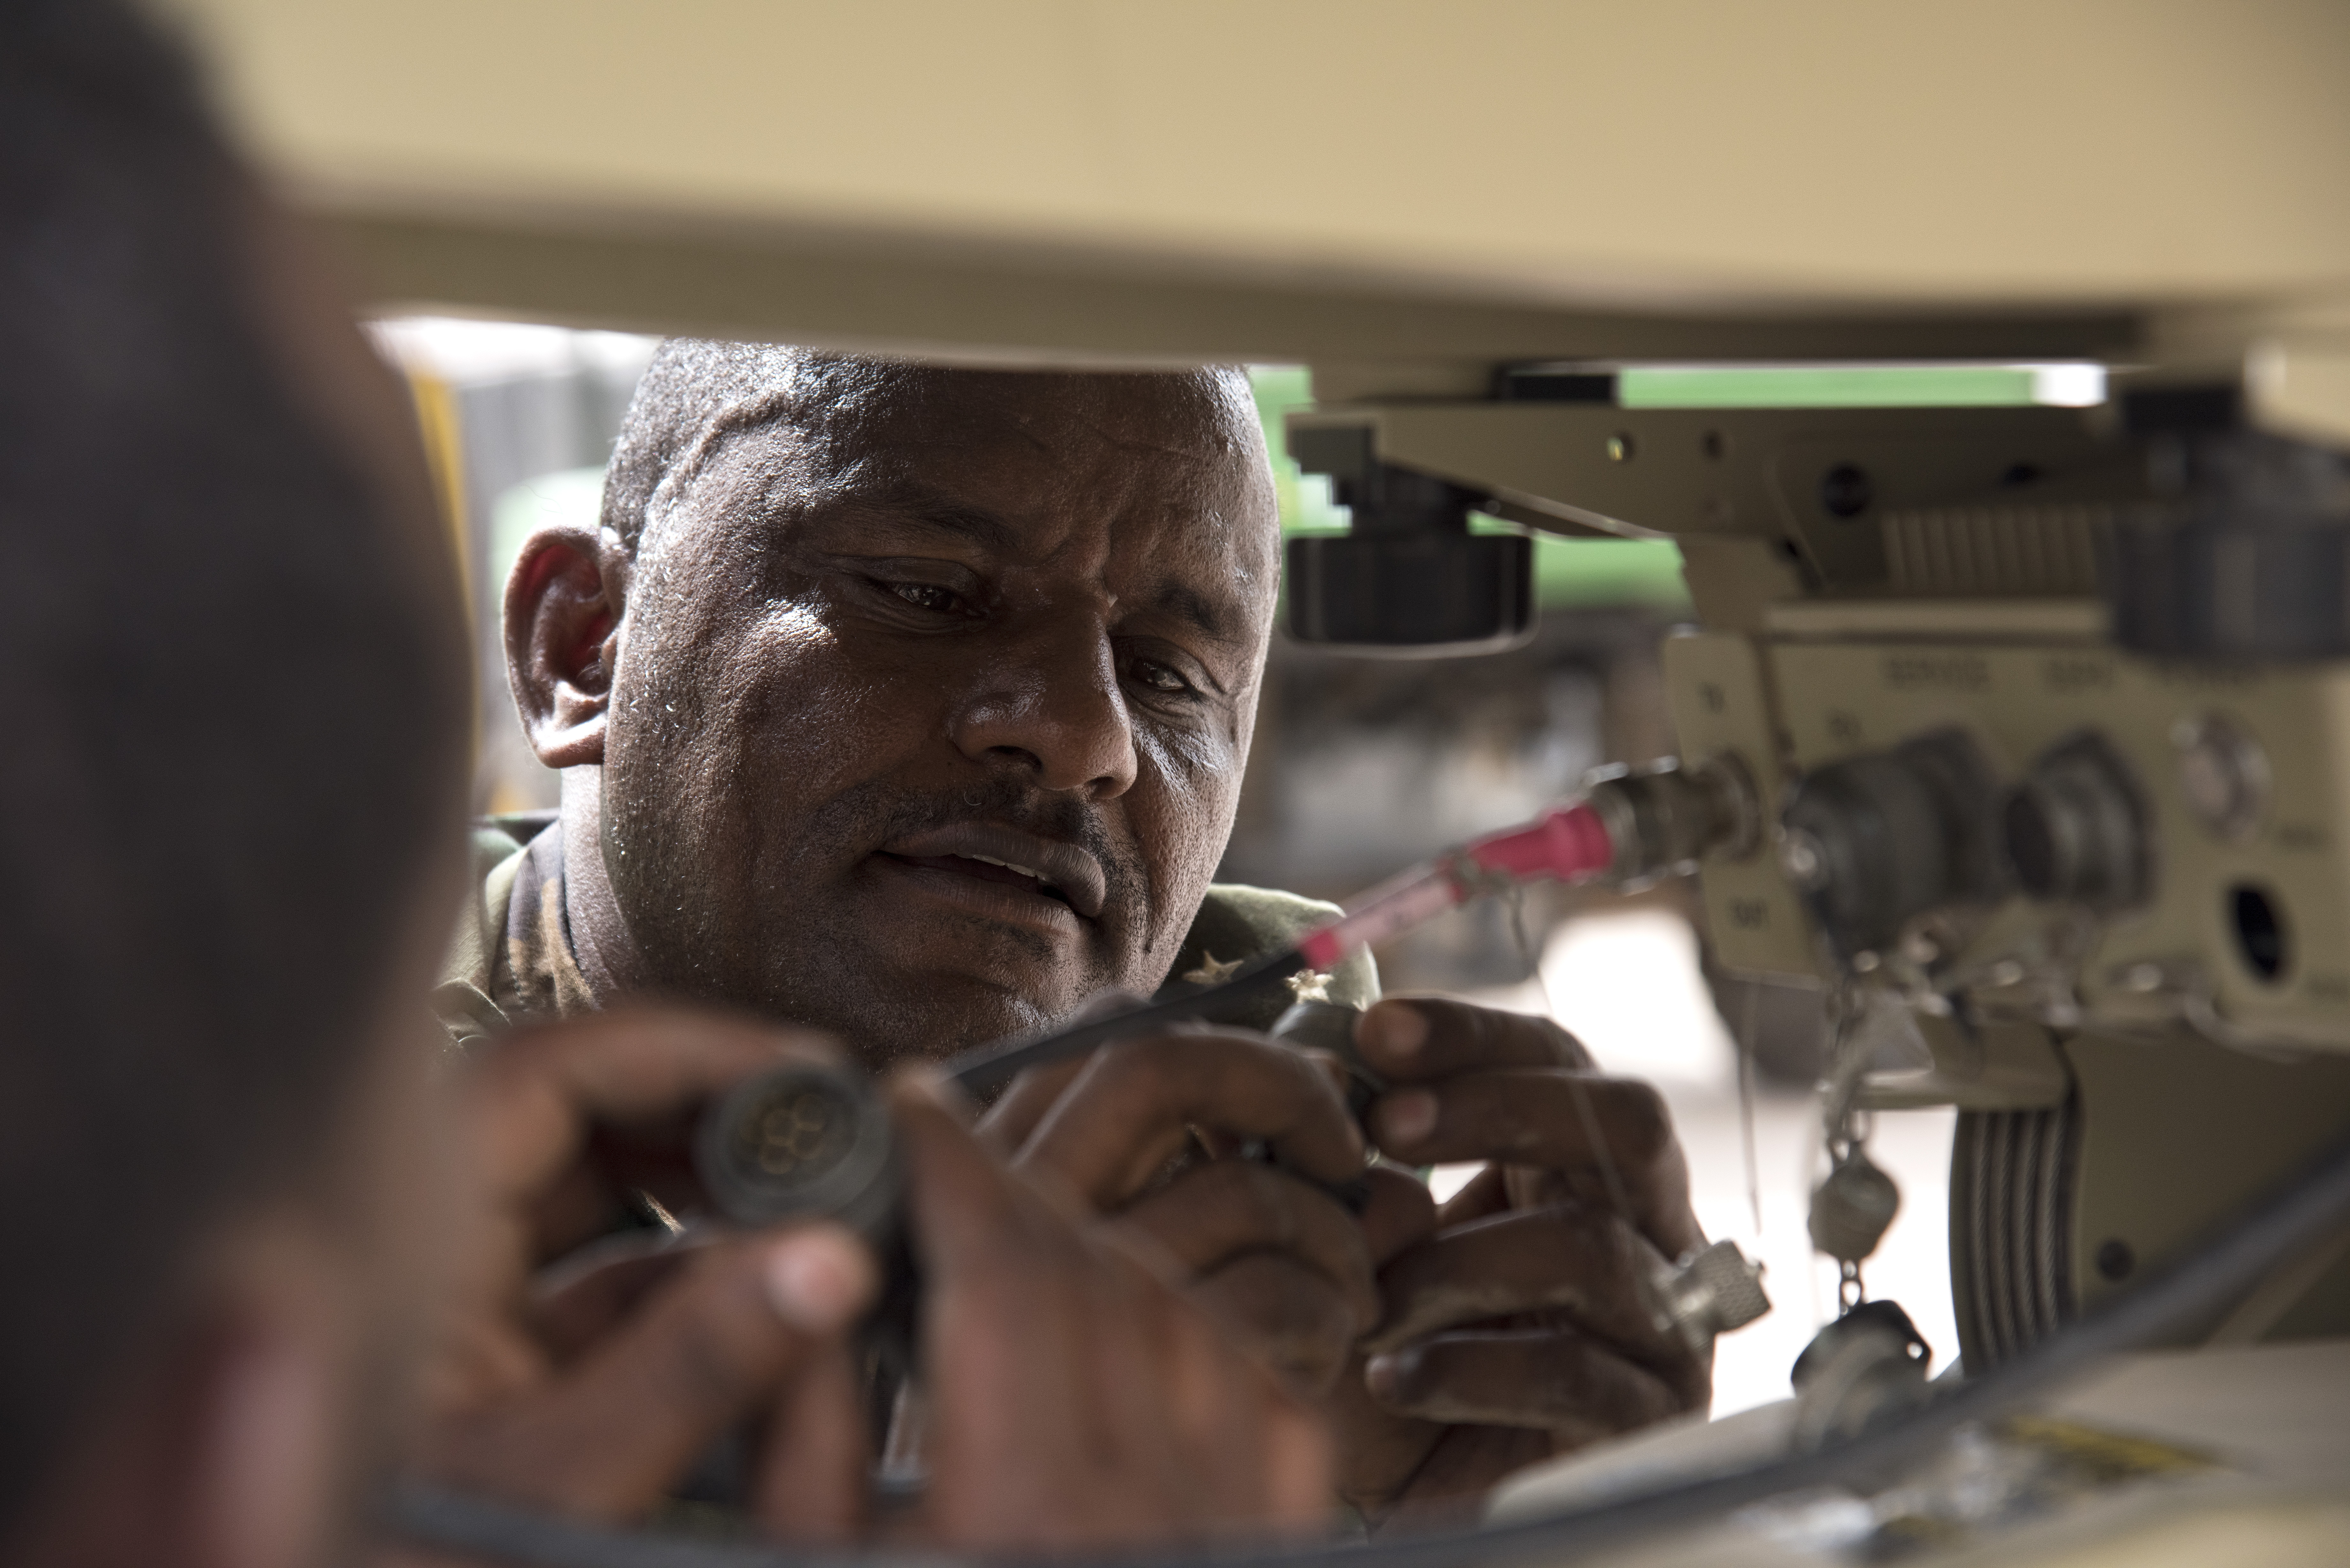 A member of the Ethiopian National Defense Force (ENDF) checks a cable connector during the setup of a U.S. Africa Command Data Sharing Network (ADSN) terminal at Camp Lemonnier, Djibouti, Aug. 18, 2015. ENDF personnel were tested on how quickly they could setup and tear down the field communication system as part of a multi-week ADSN course, which was hosted by Combined Joint Task Force-Horn of Africa communications and intelligence personnel, and was designed to broaden communication interoperability between host nation security forces. (U.S. Air Force photo by Staff Sgt. Nathan Maysonet/released)